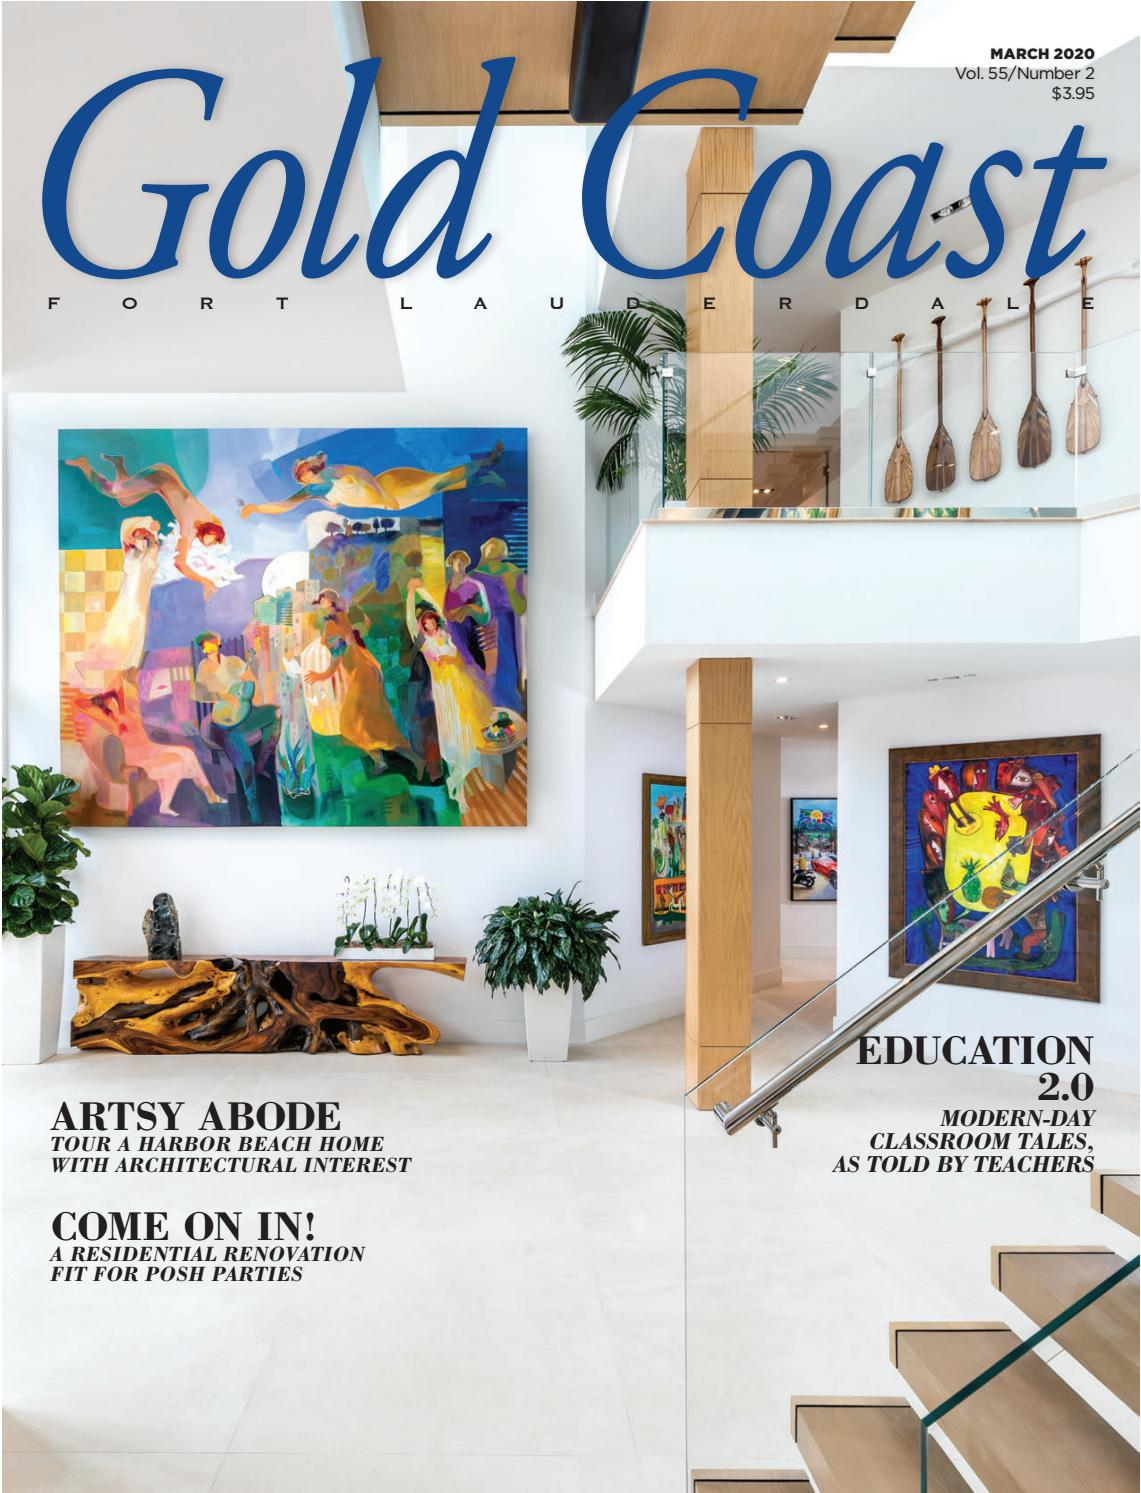 Gold Coast Ft Lauderdale Magazine March 2020 By Palm Beach Media Group Issuu